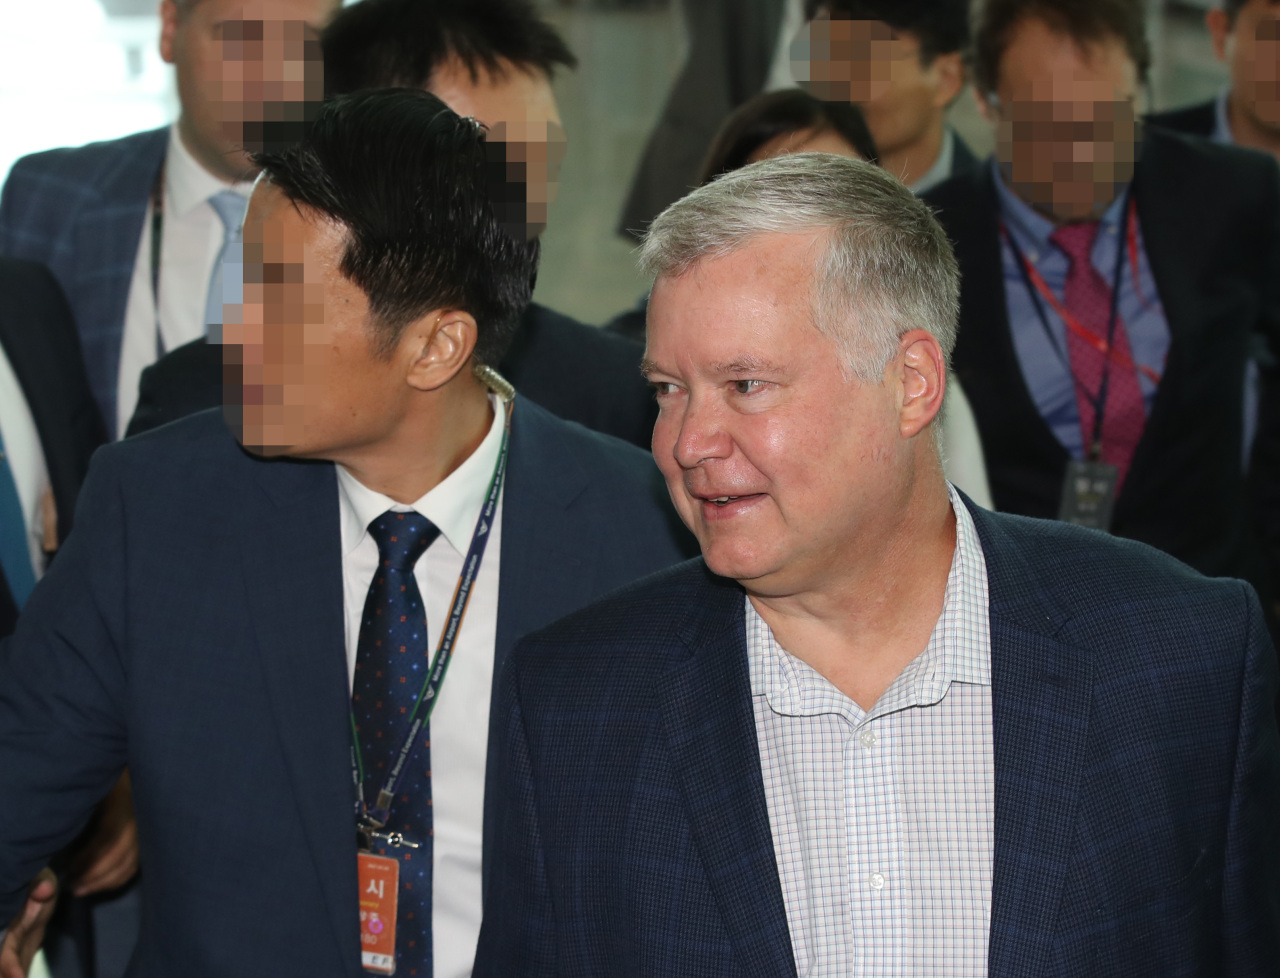 US Special Representative for North Korea Stephen Biegun seen at the Incheon International Airport on Aug. 23. Yonhap